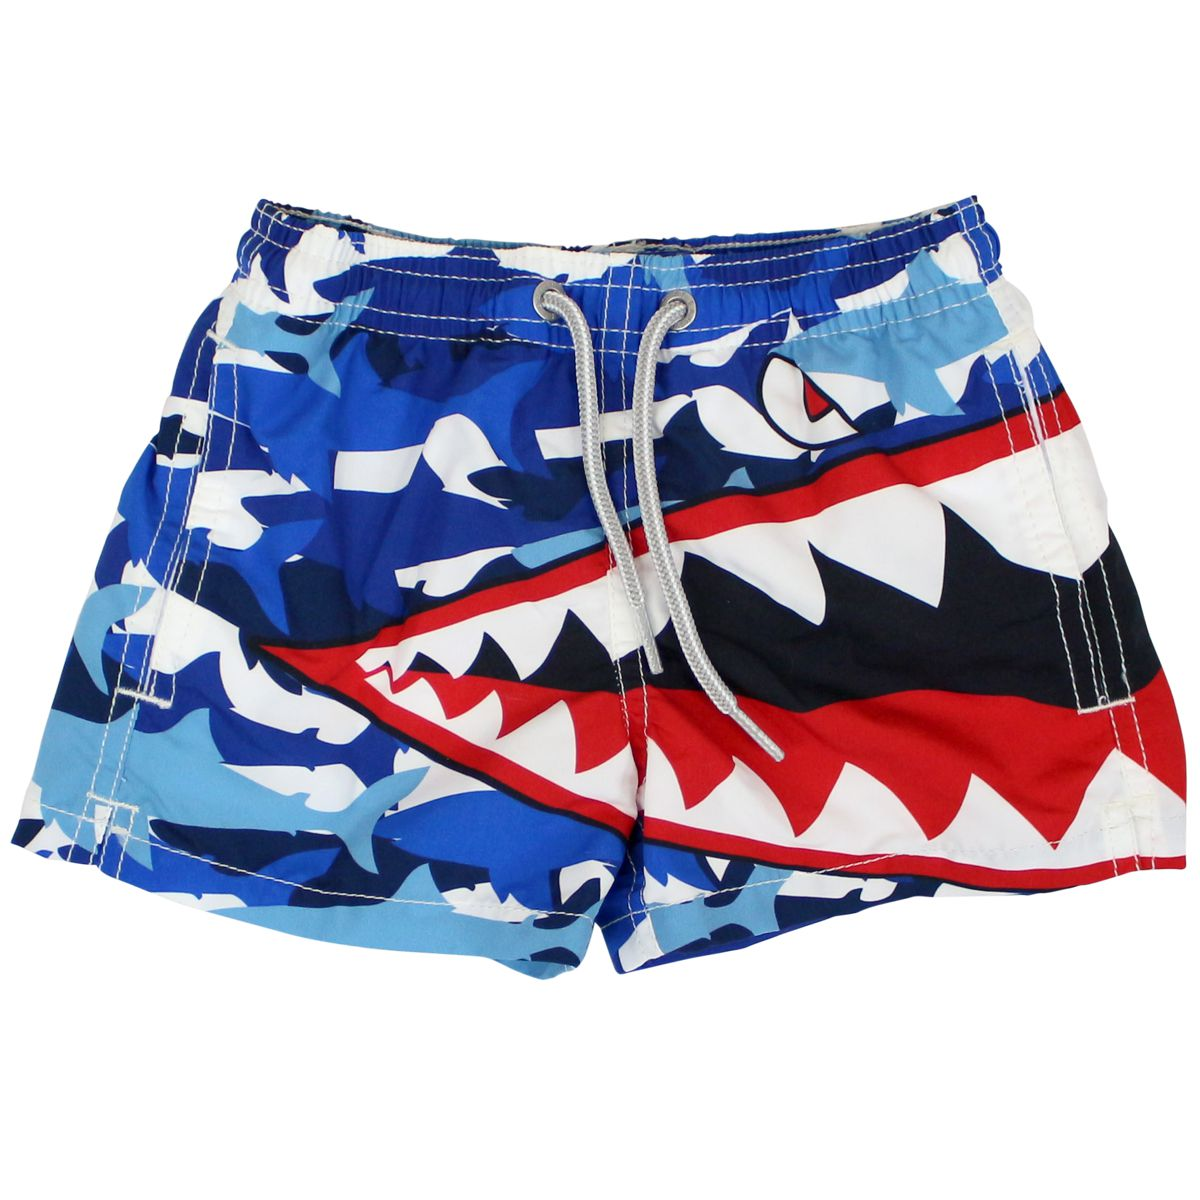 Haiti costume with shark camouflag print Multicolor MC2 Saint Barth